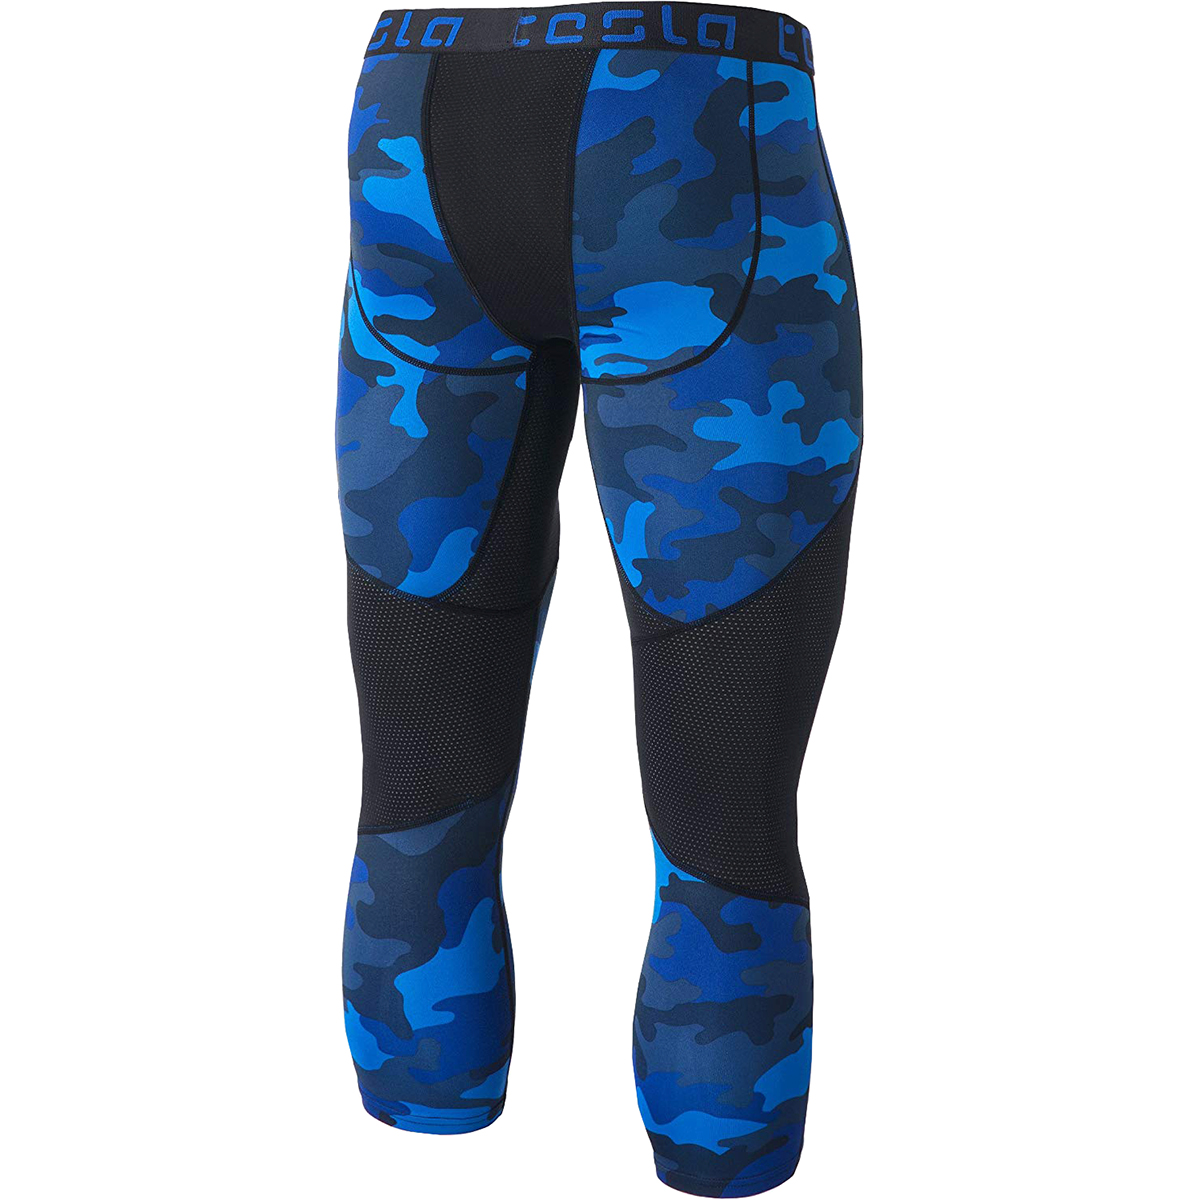 e18a696245d3f Details about TSLA Tesla MUC78 3/4-Length Compression Pants - 2XL - Woodland  Camo/Blue/Black